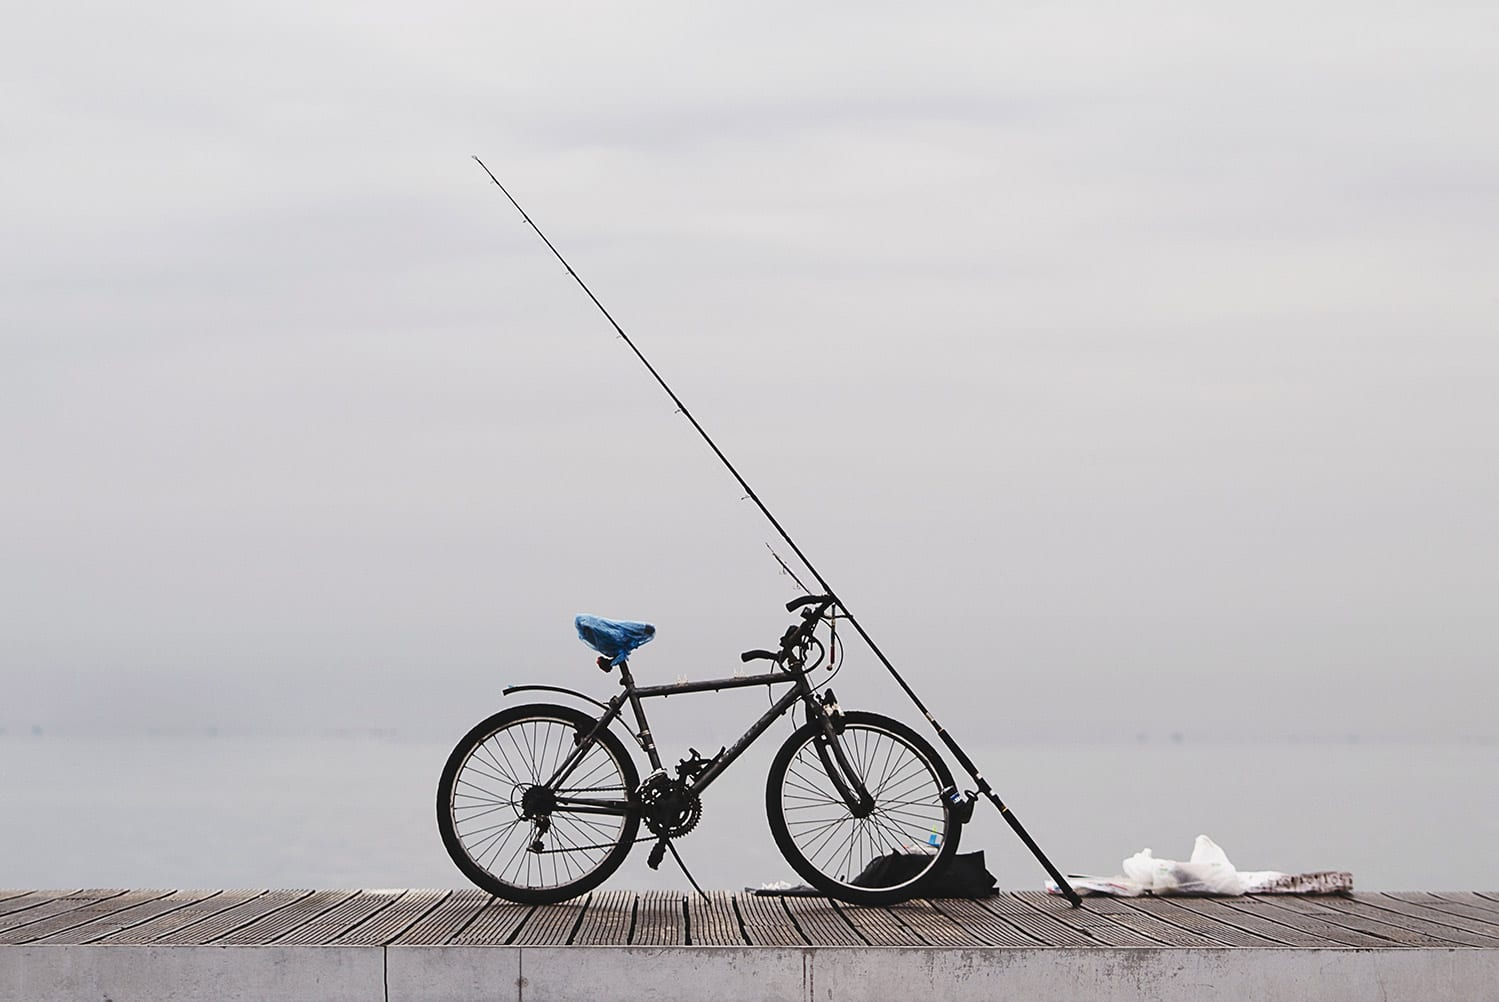 bike with a fishing rod resting on it